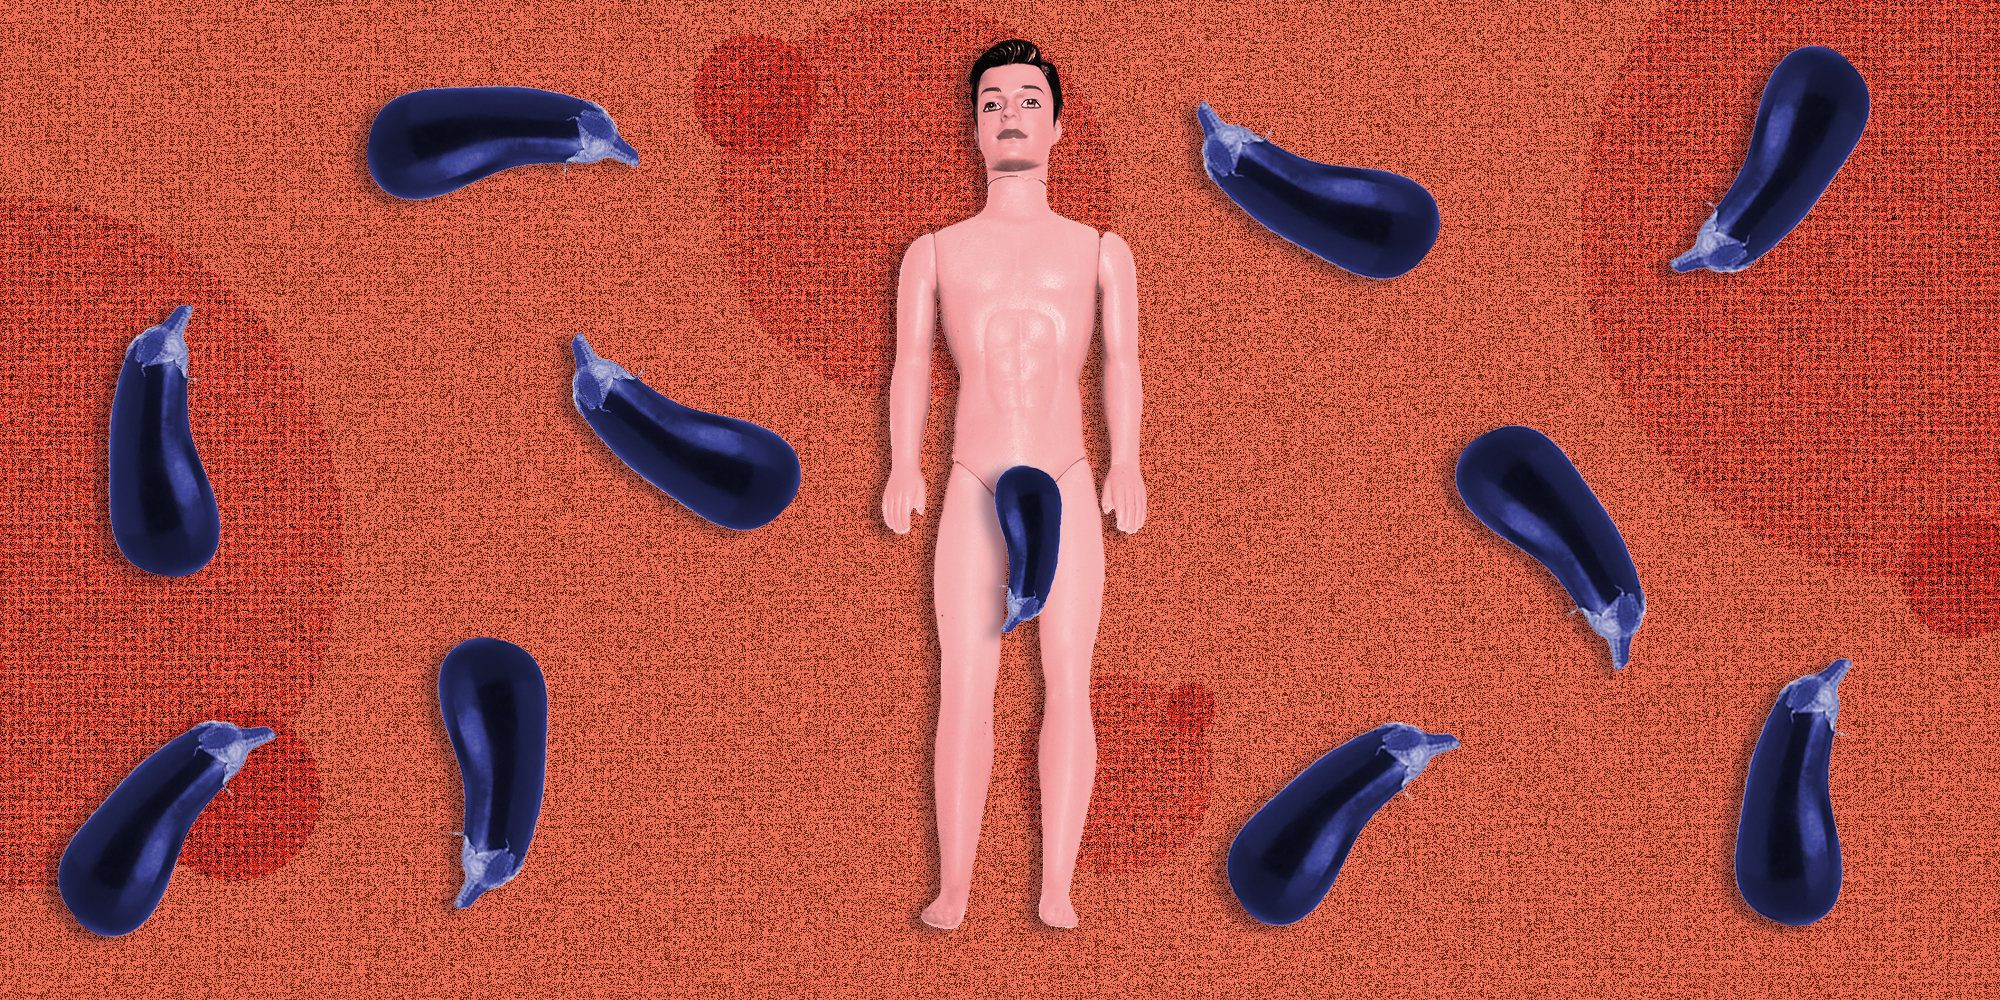 Myths about a man's penis size and shape abound.